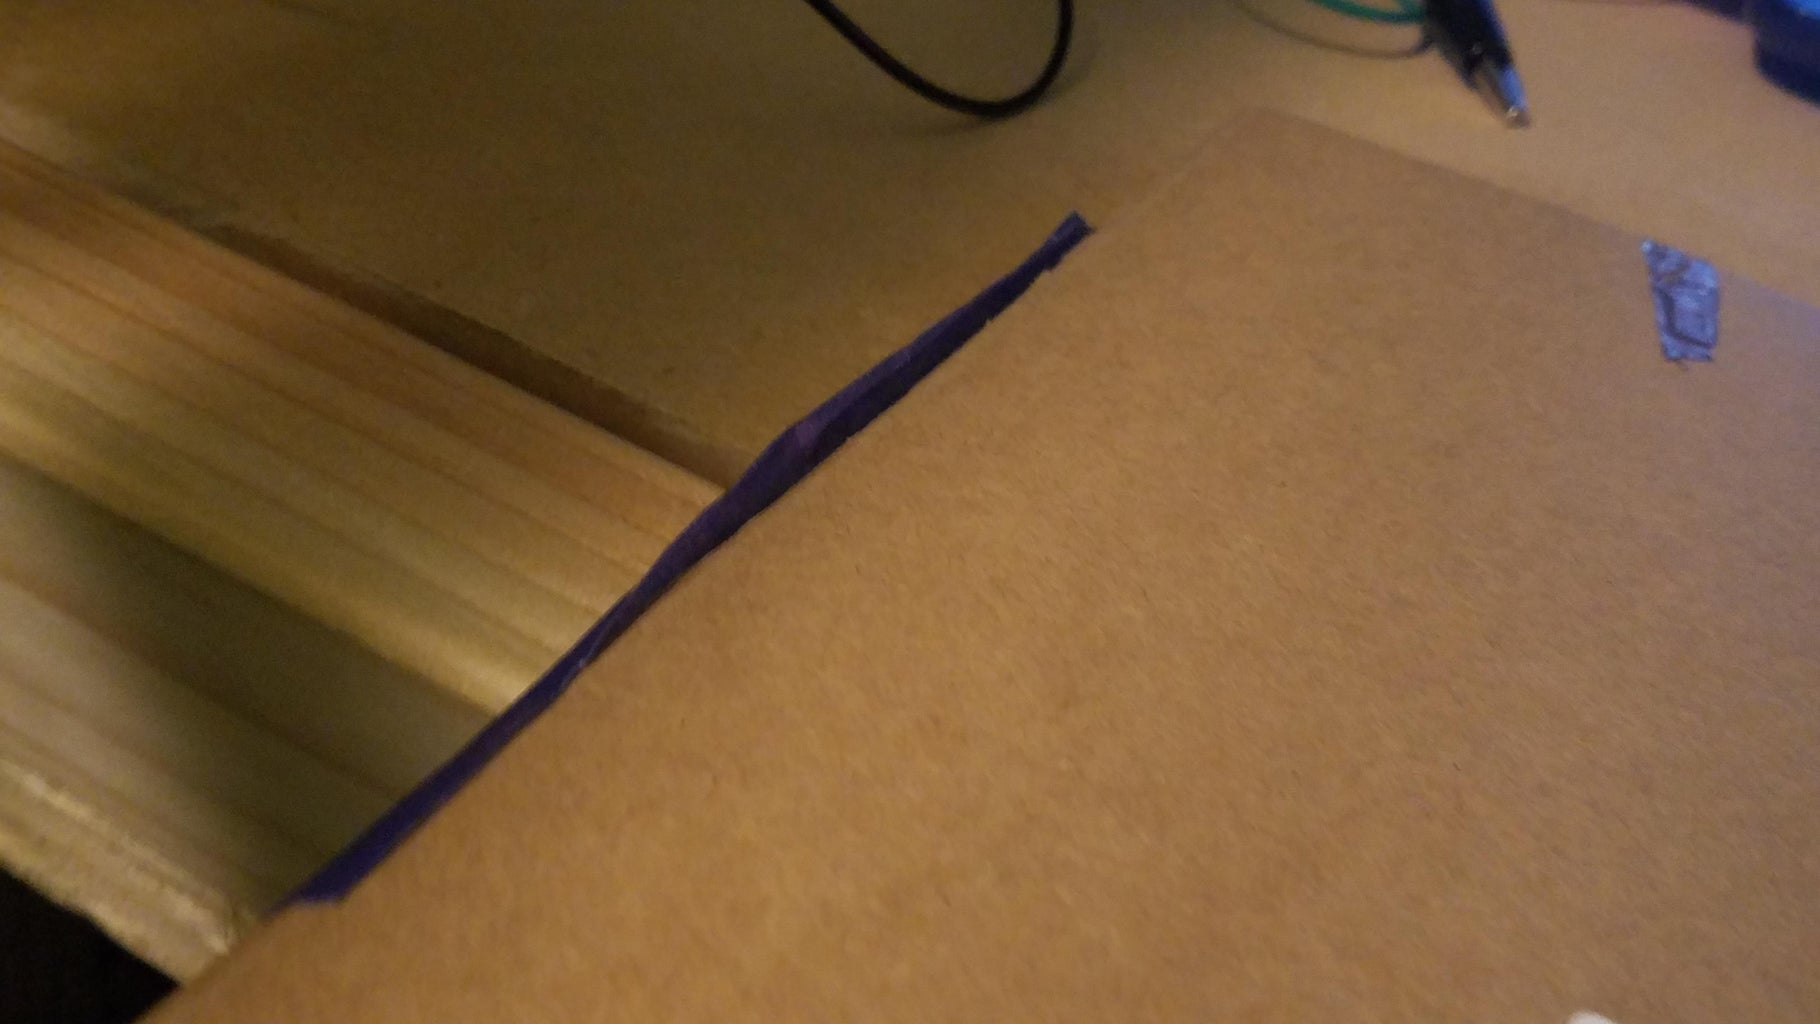 Putting the Foil and Conductive Tape Onto the Cardboard